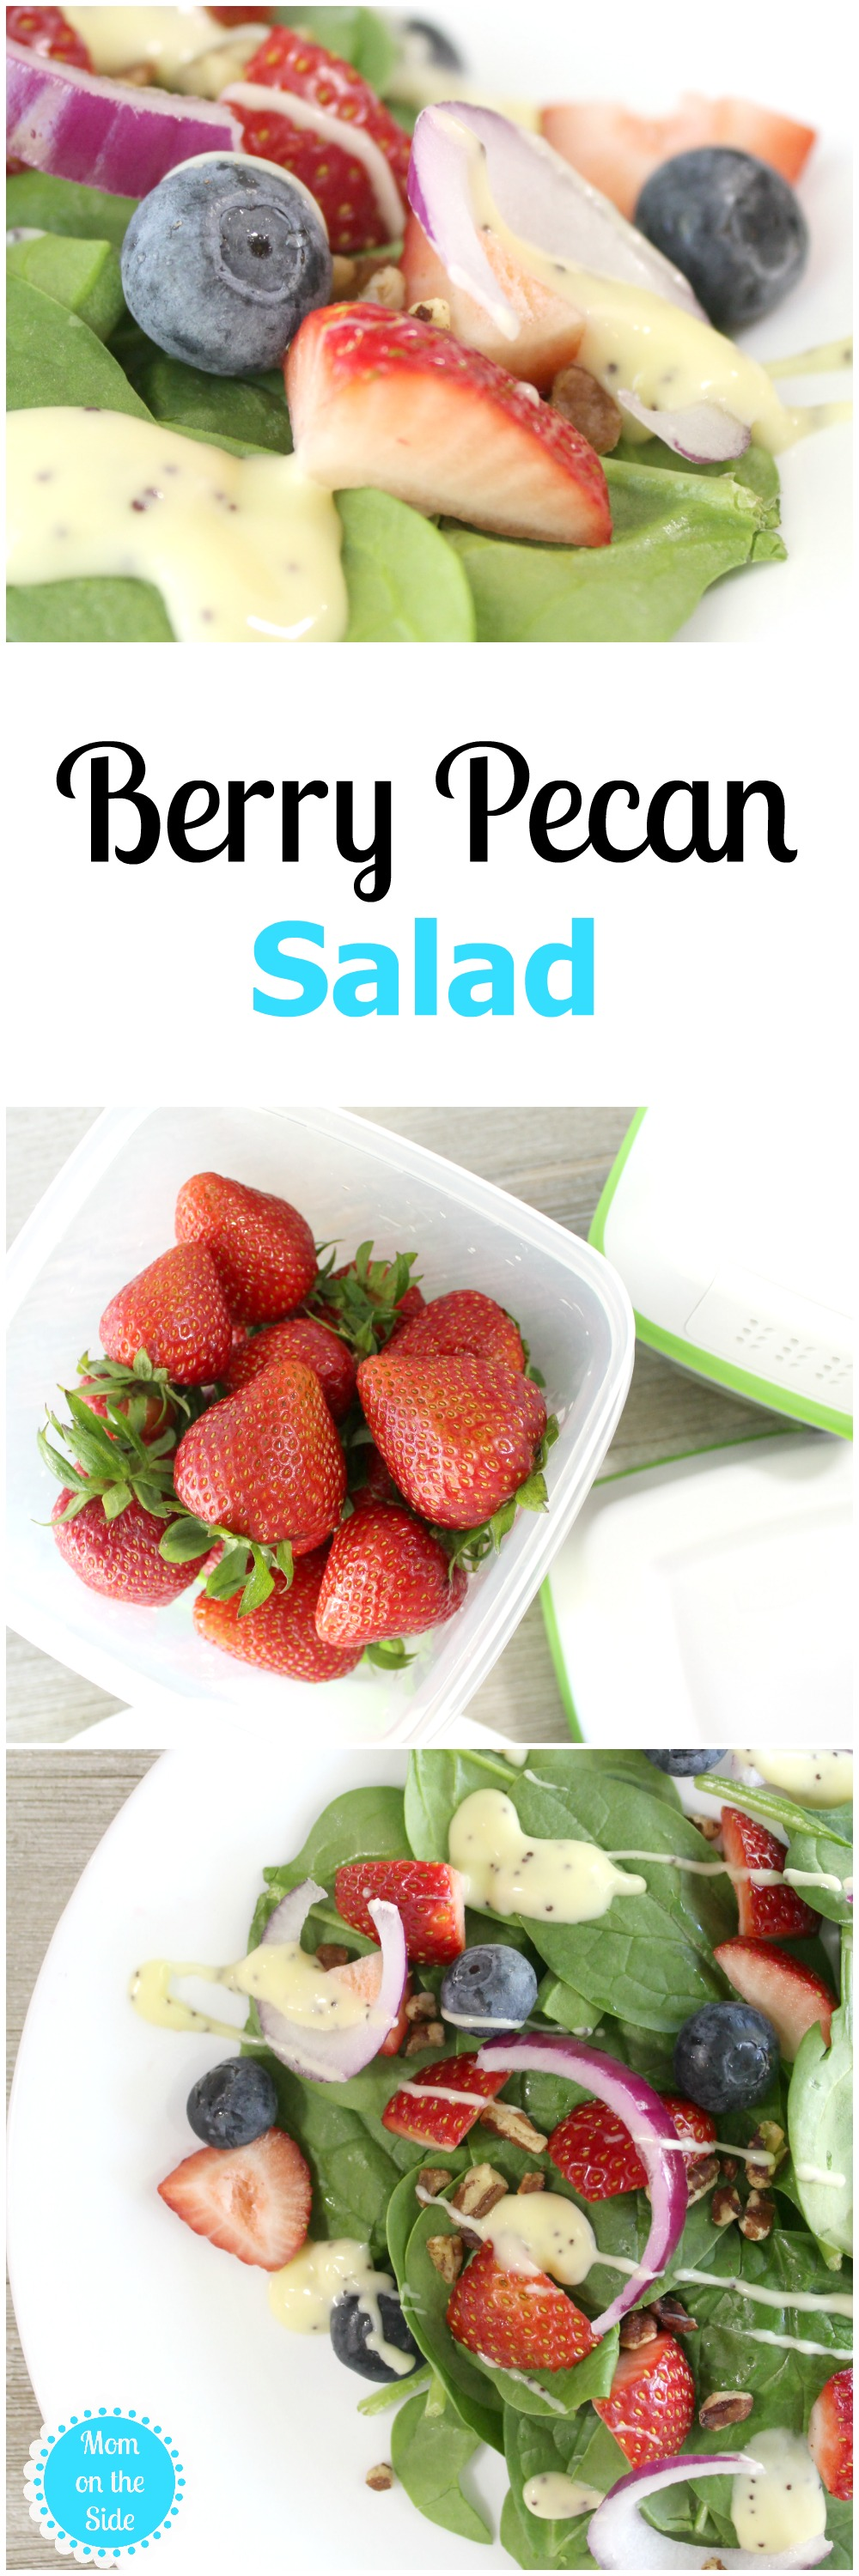 Enjoy Berry Pecan Salad Recipe all week long when you store produce in Rubbermaid FreshWorks Produce Saver! Get the recipe and check out the containers!